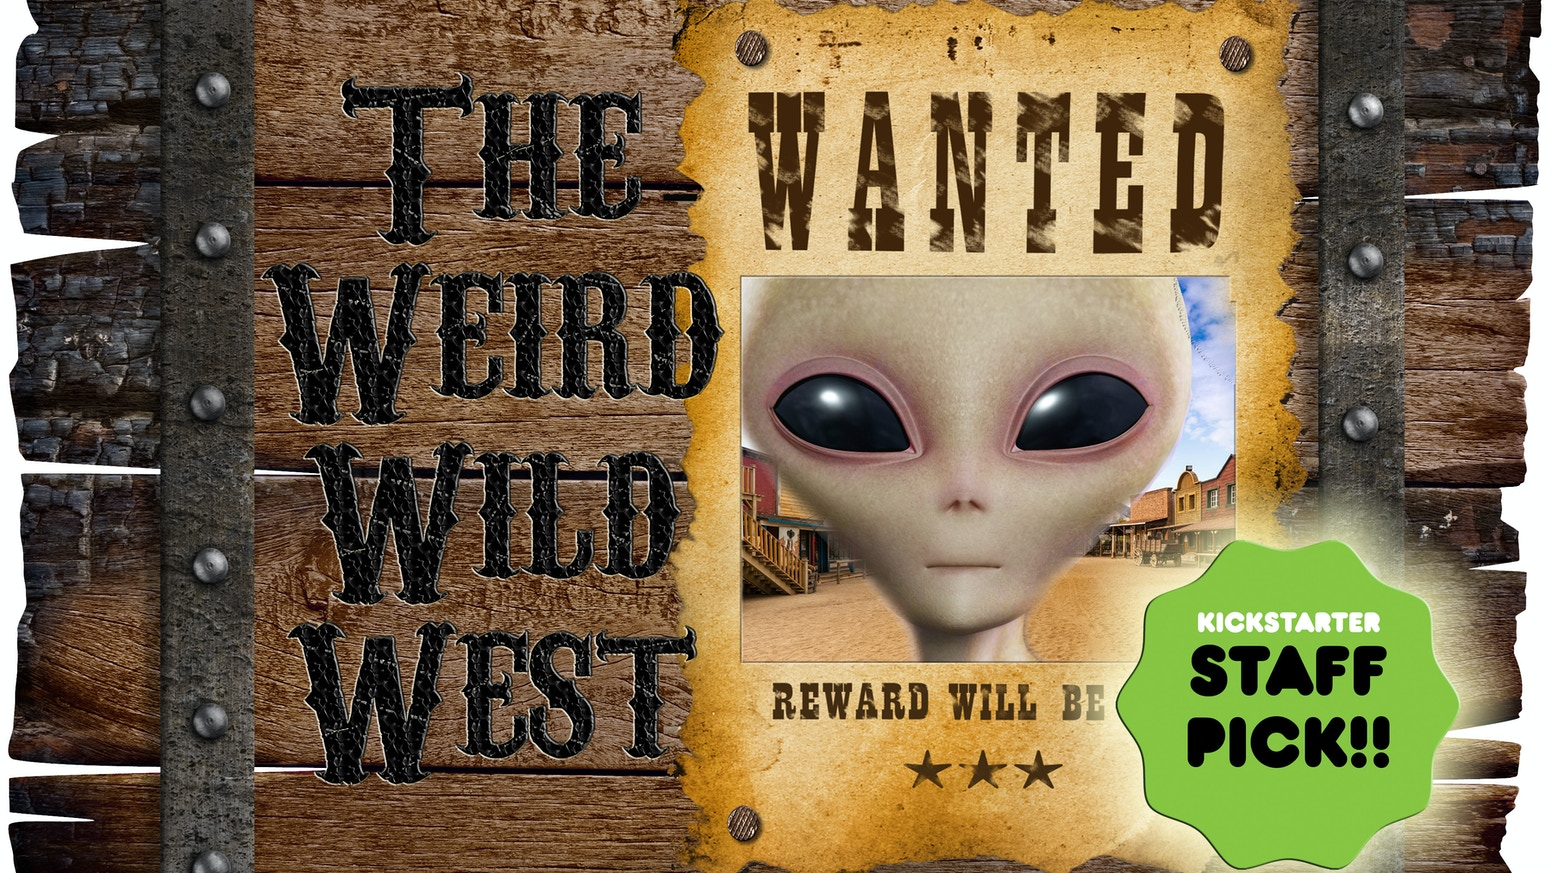 Tales of the weird wild west by danielle ackley mcphail kickstarter the great unknown and the wild frontier collide in the weird wild west with stories by fandeluxe Choice Image